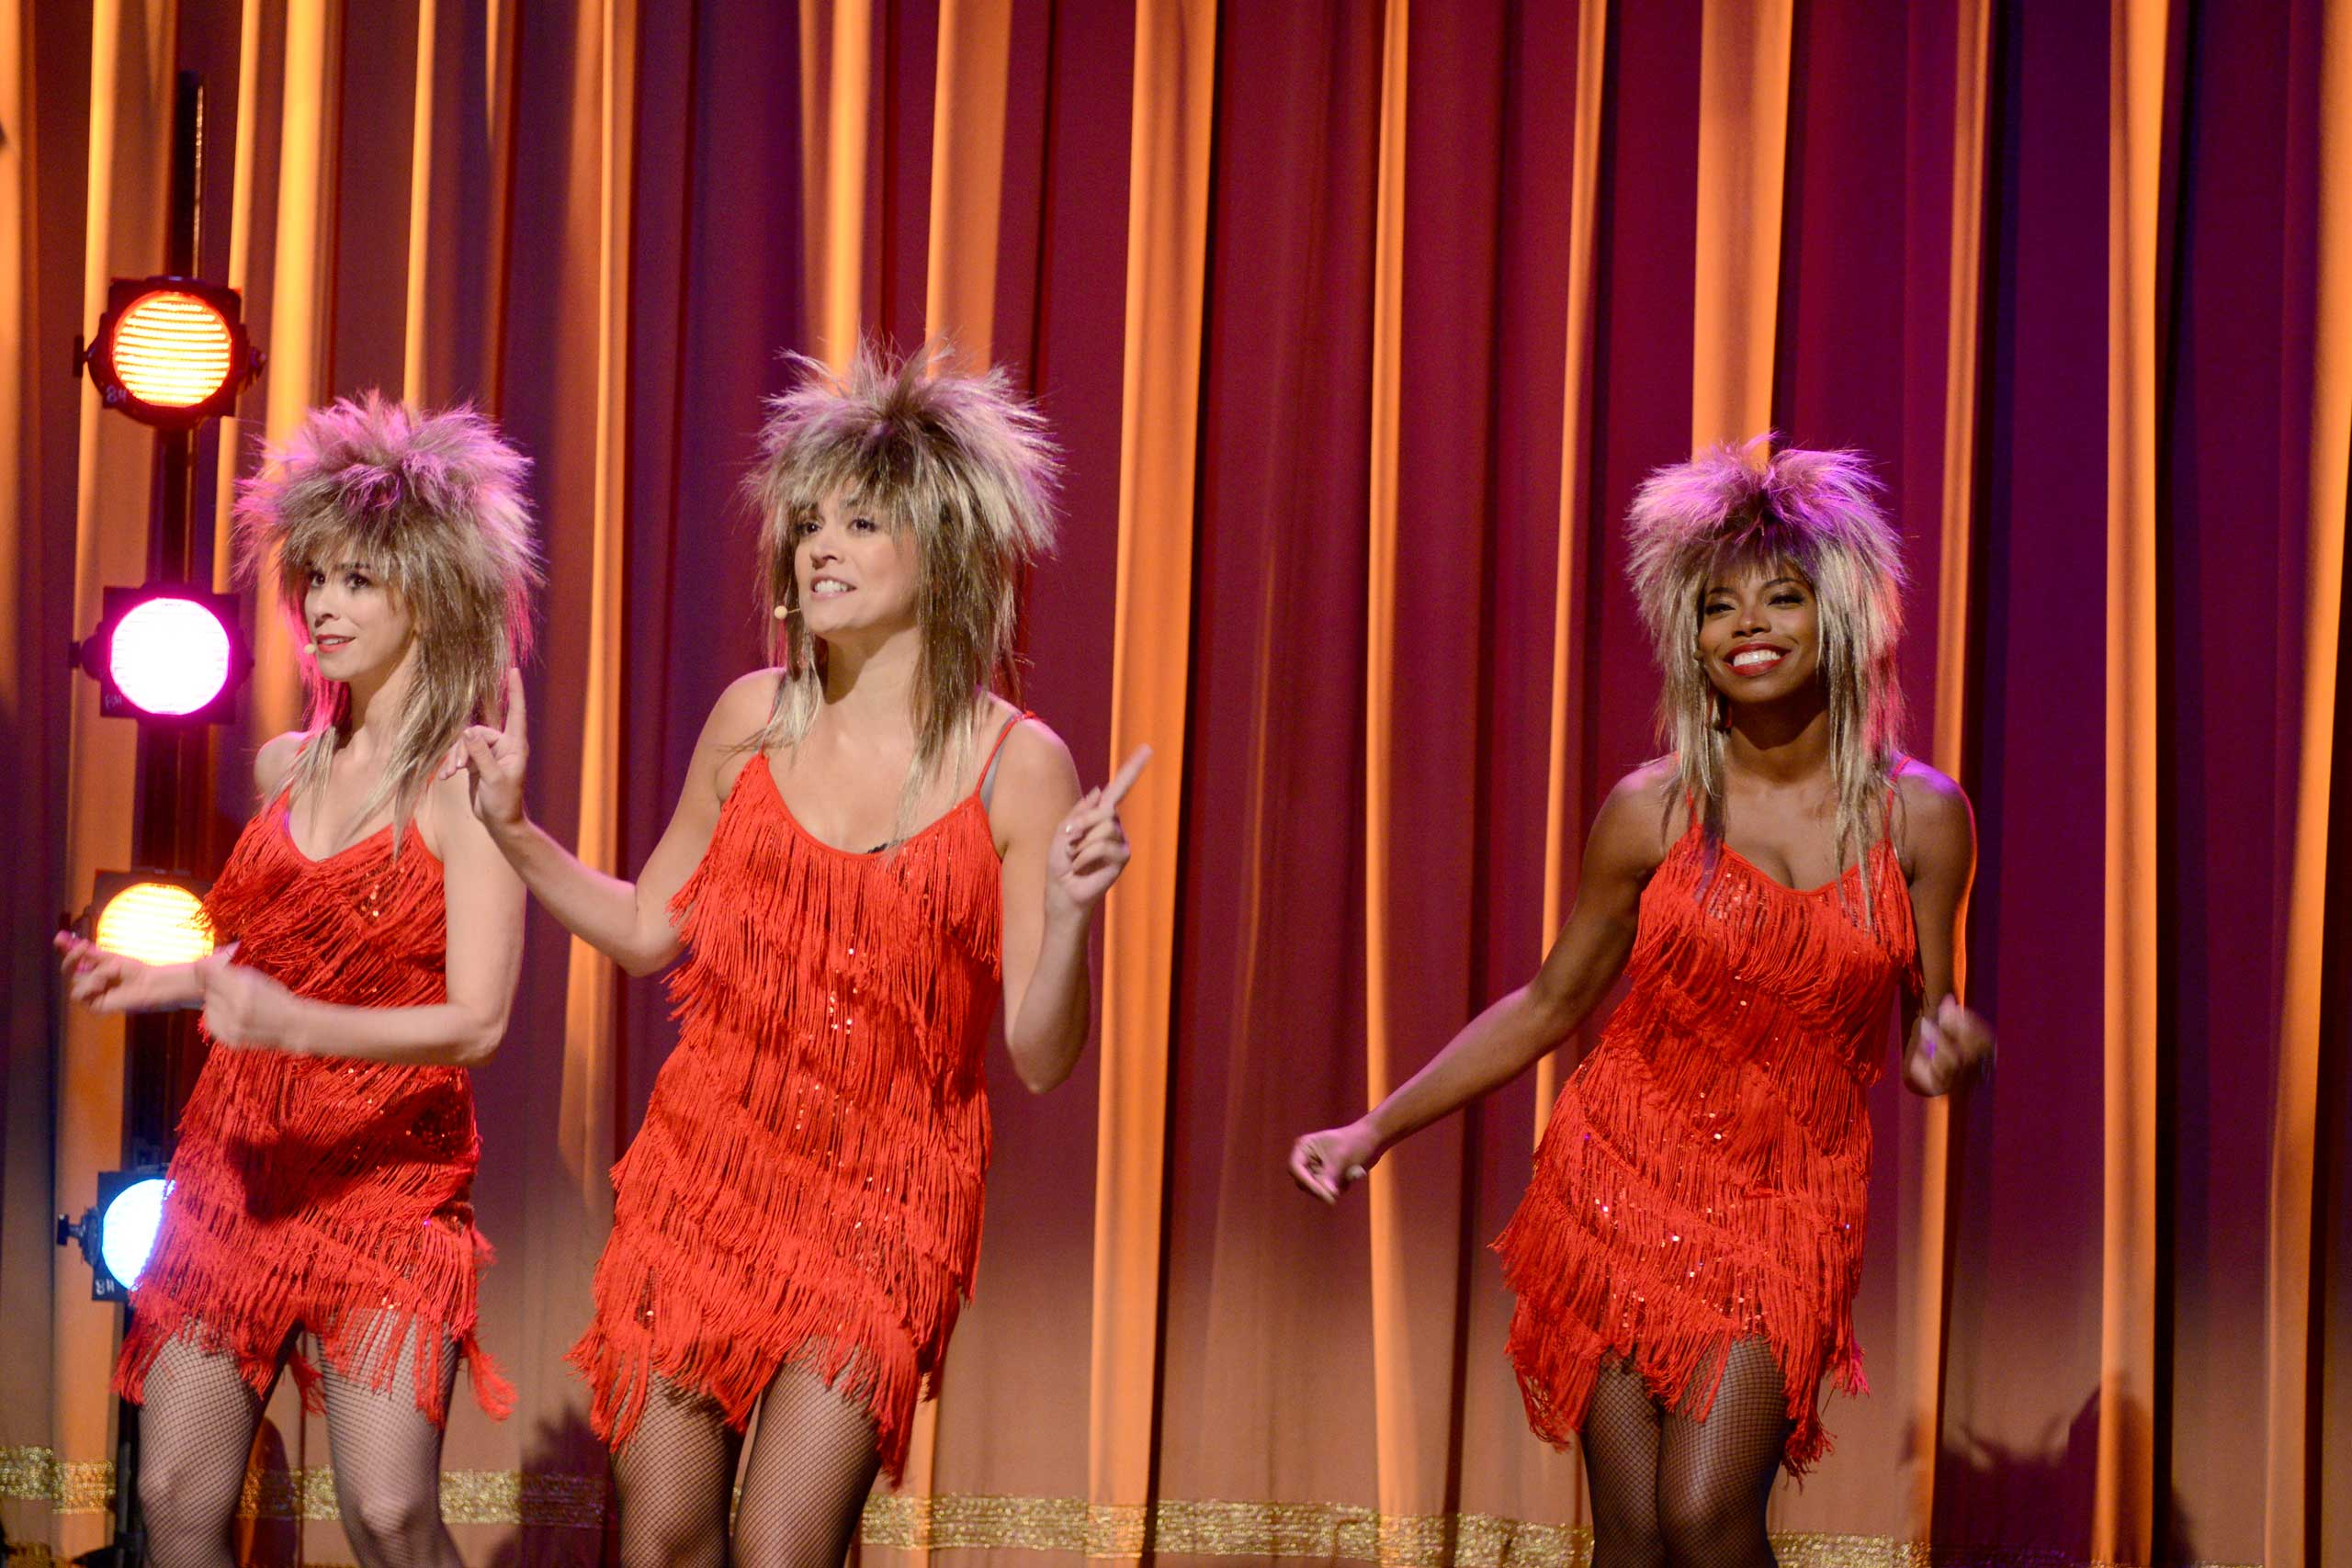 Sarah Silverman, Cecily Strong and Sasheer Zamata during the  Proud Mary  skit on Oct. 4, 2014.